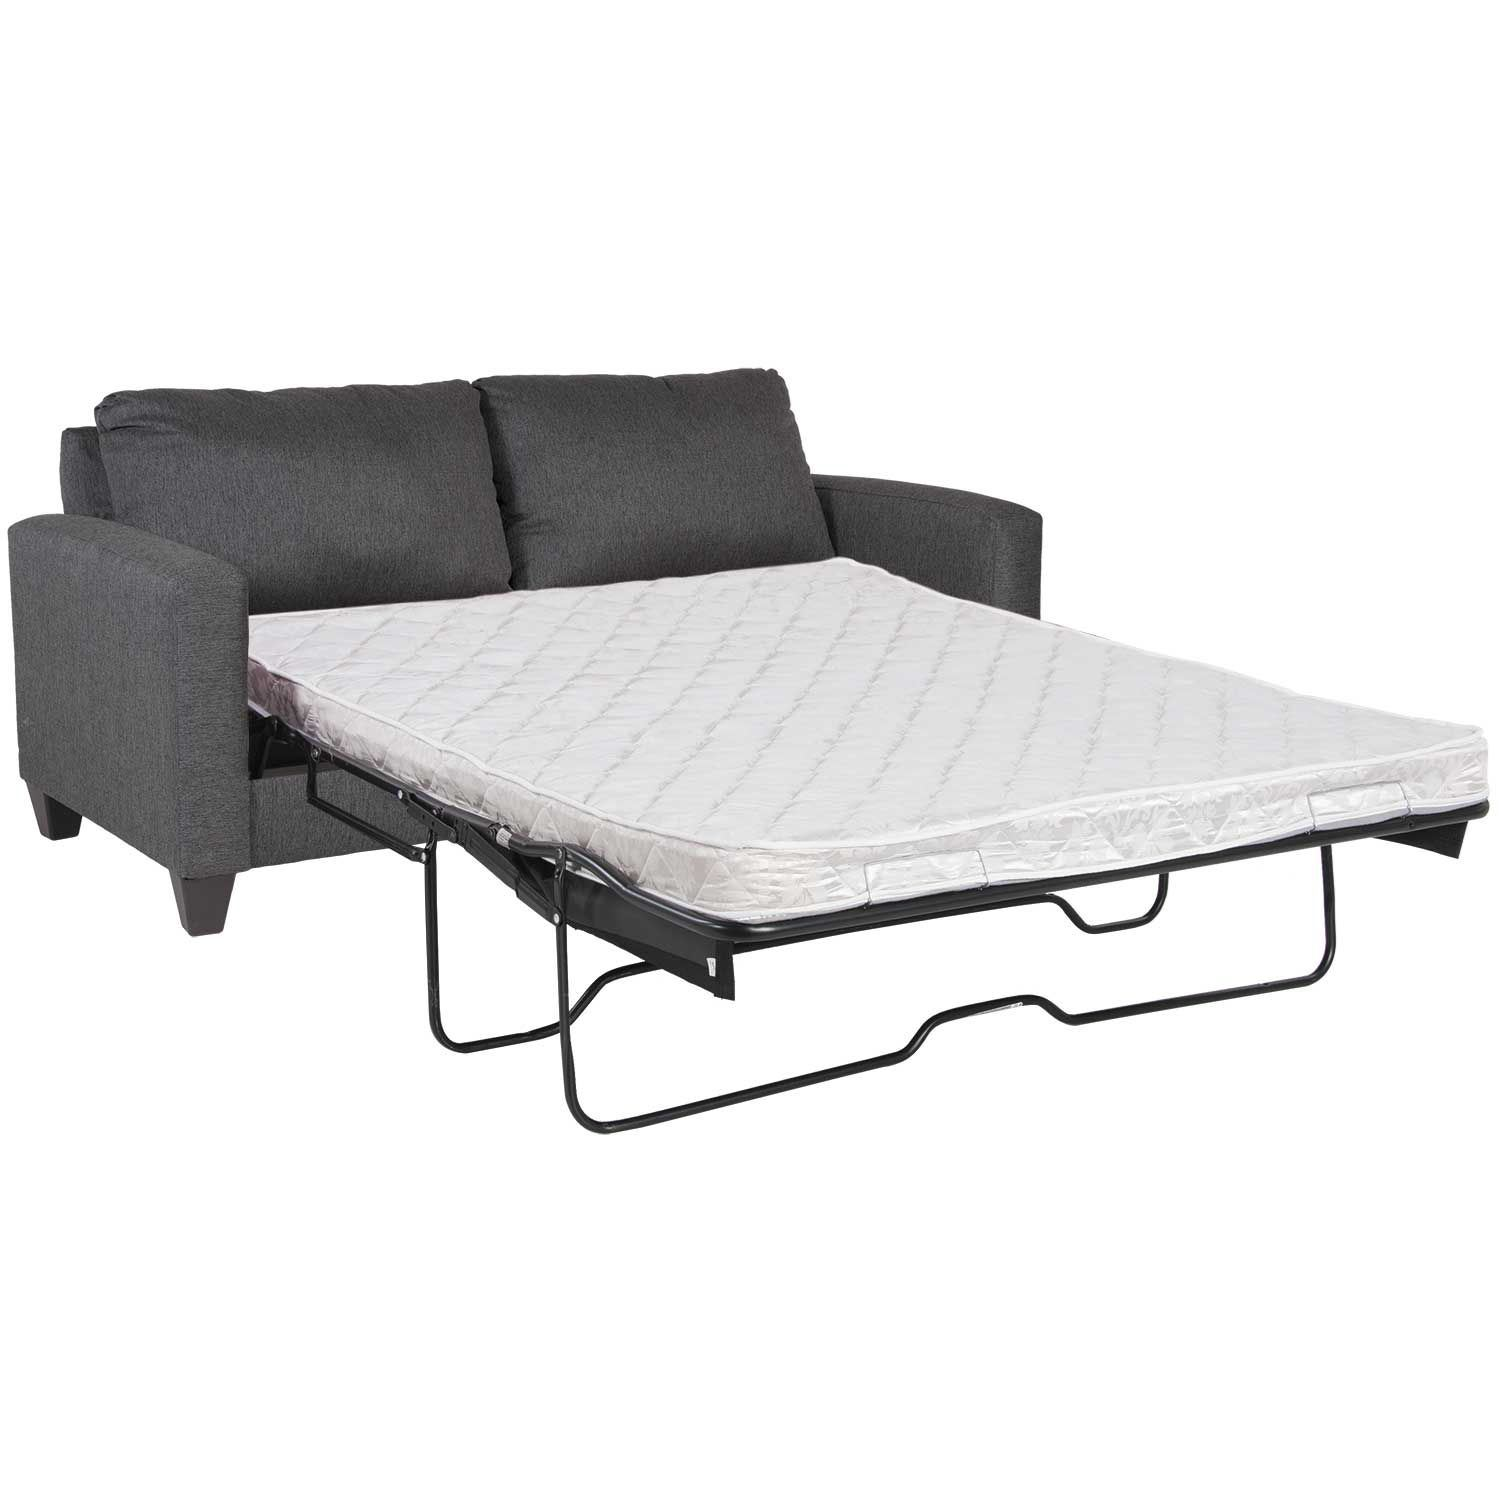 Piper Carbon Full Sleeper Sofa 1005